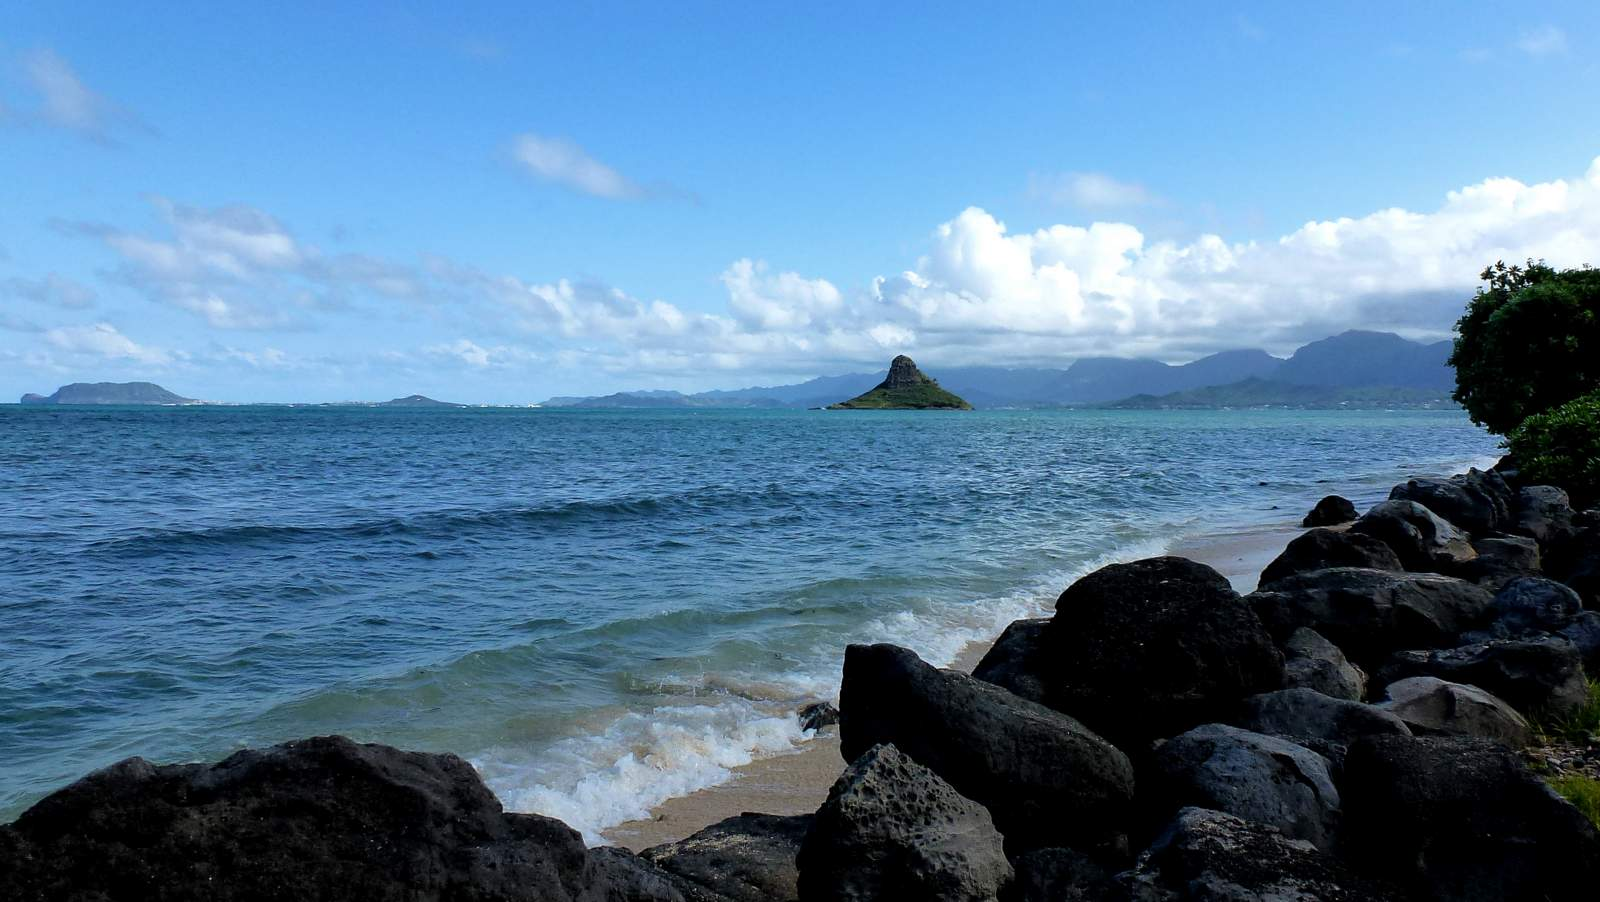 Chinaman's Hat, one of the things to see driving on Oahu.